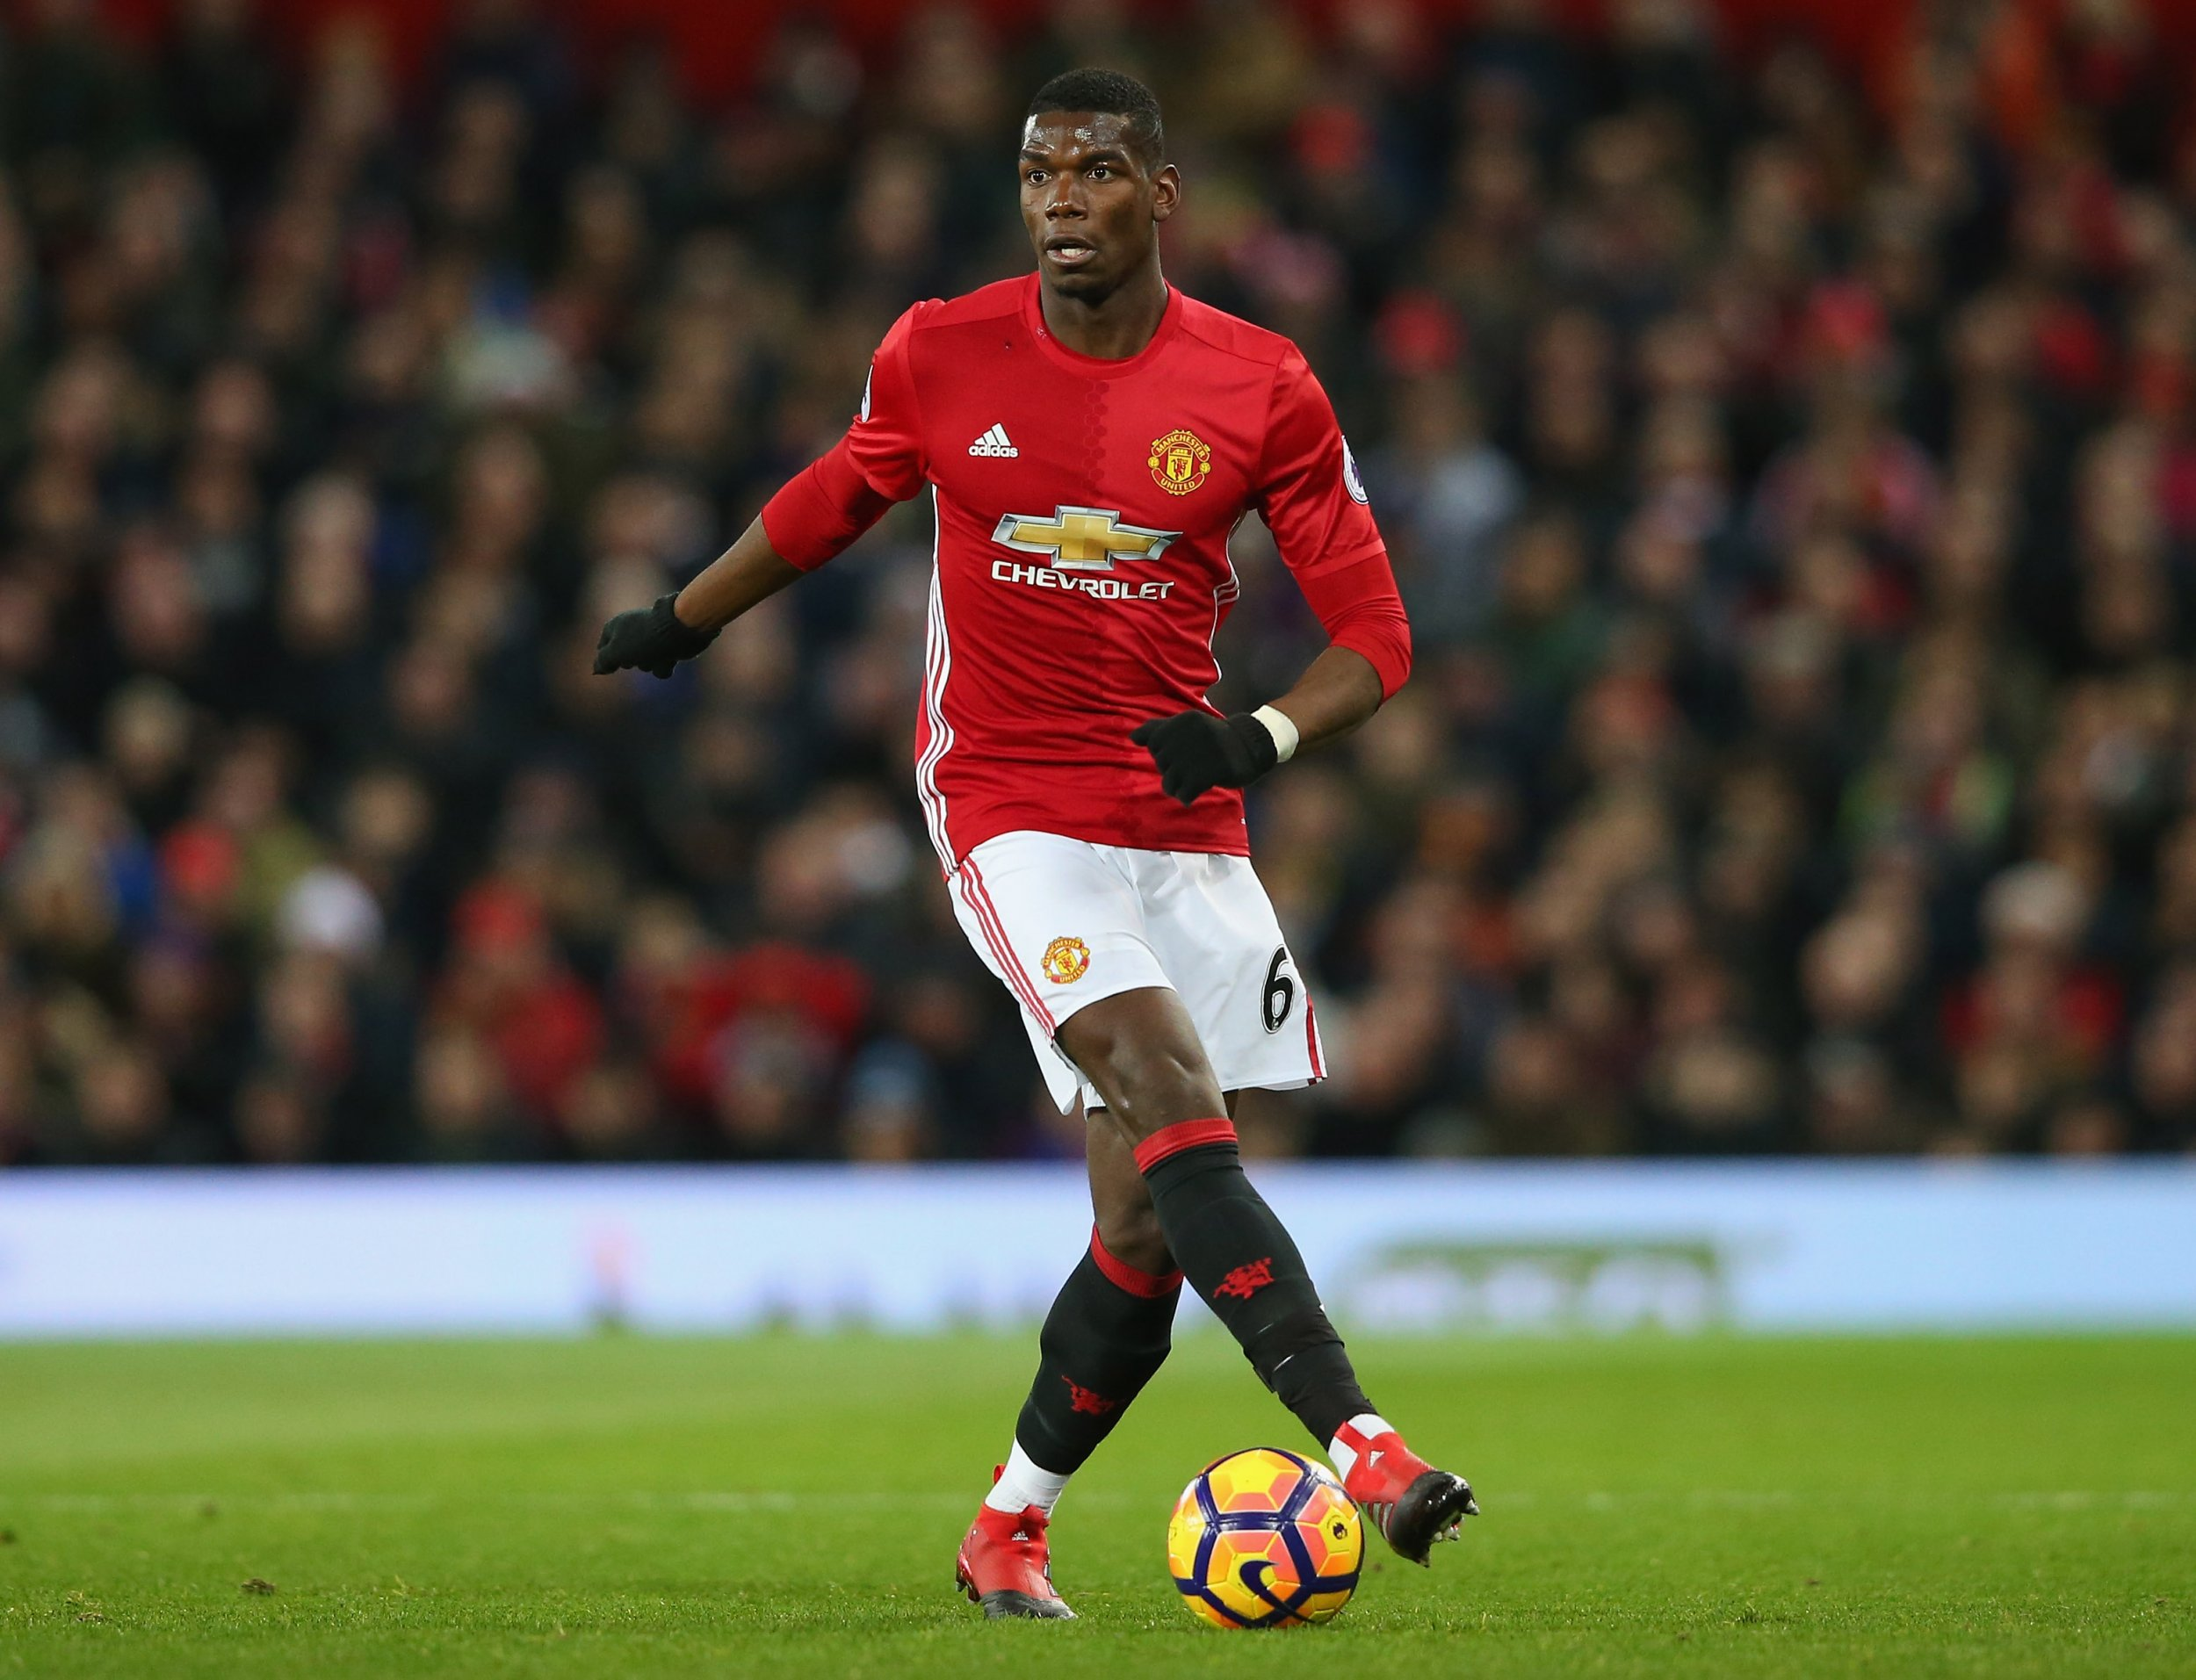 Paul Pogba Manchester United Record Signing Urged to Simplify Game